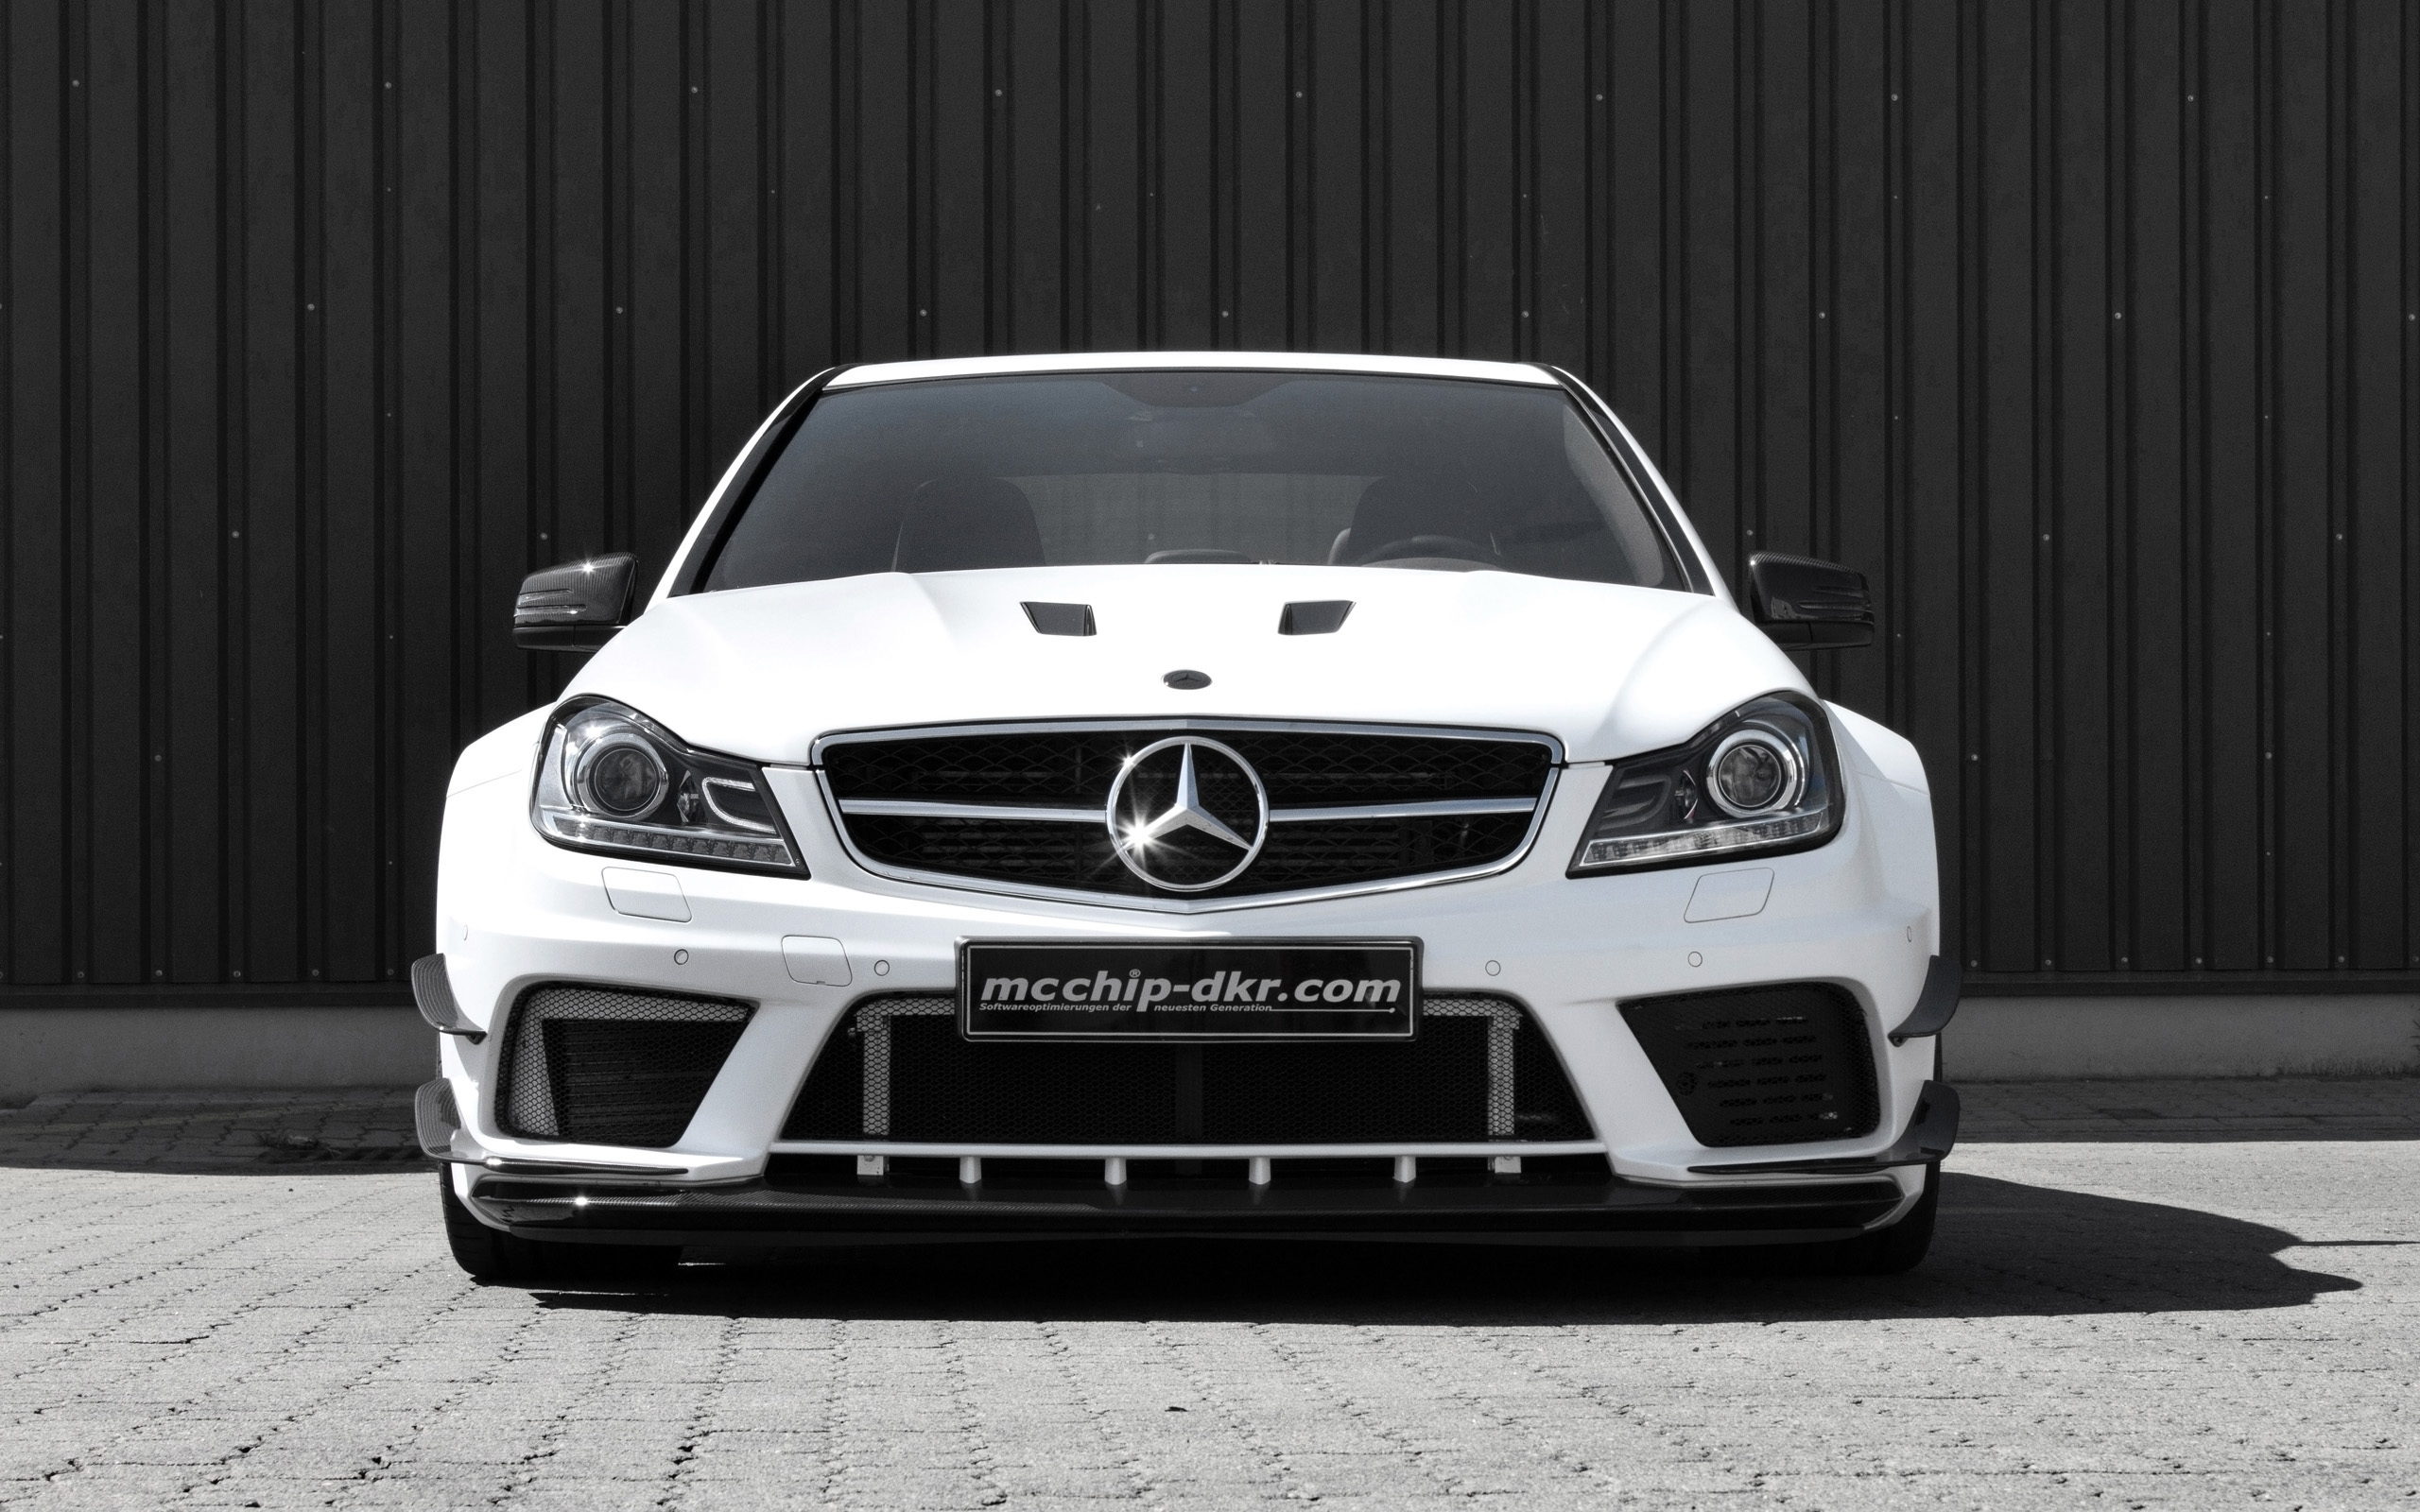 2014 mercedes benz c63 amg mc8xx by mcchip dkr car wallpapers. Black Bedroom Furniture Sets. Home Design Ideas